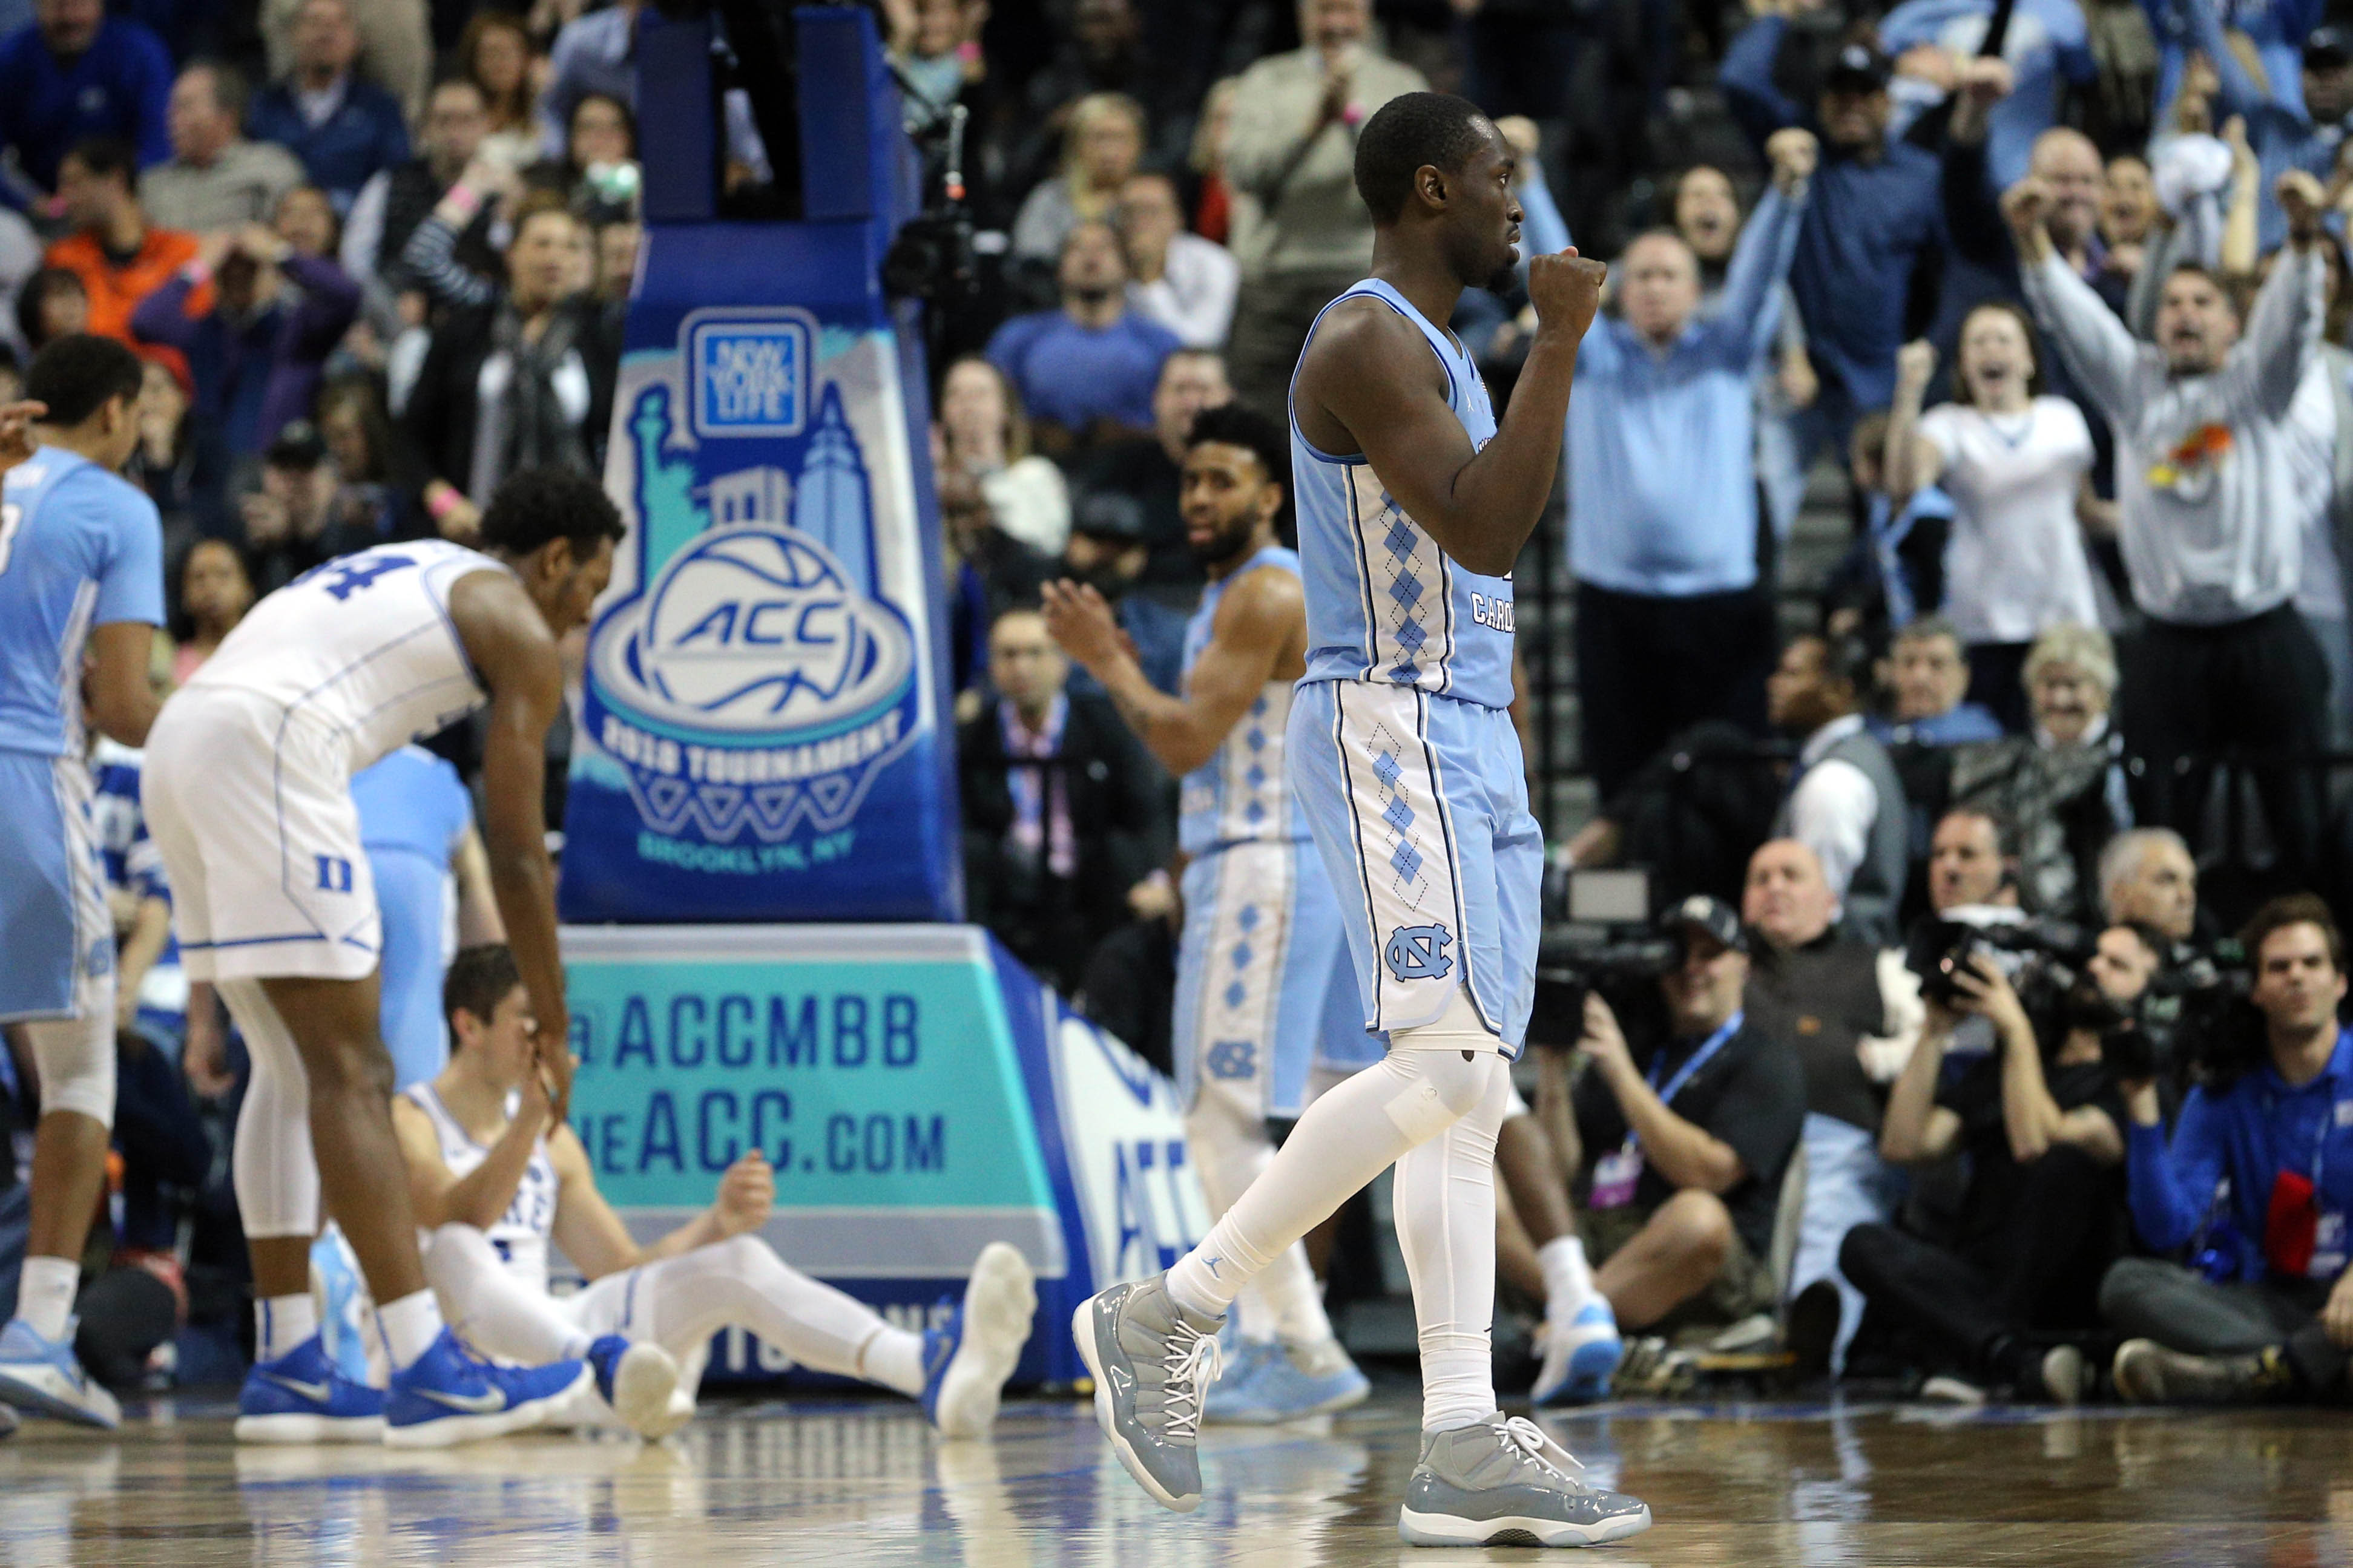 North Carolina tops Miami in ACC tournament, sets up rematch with Duke